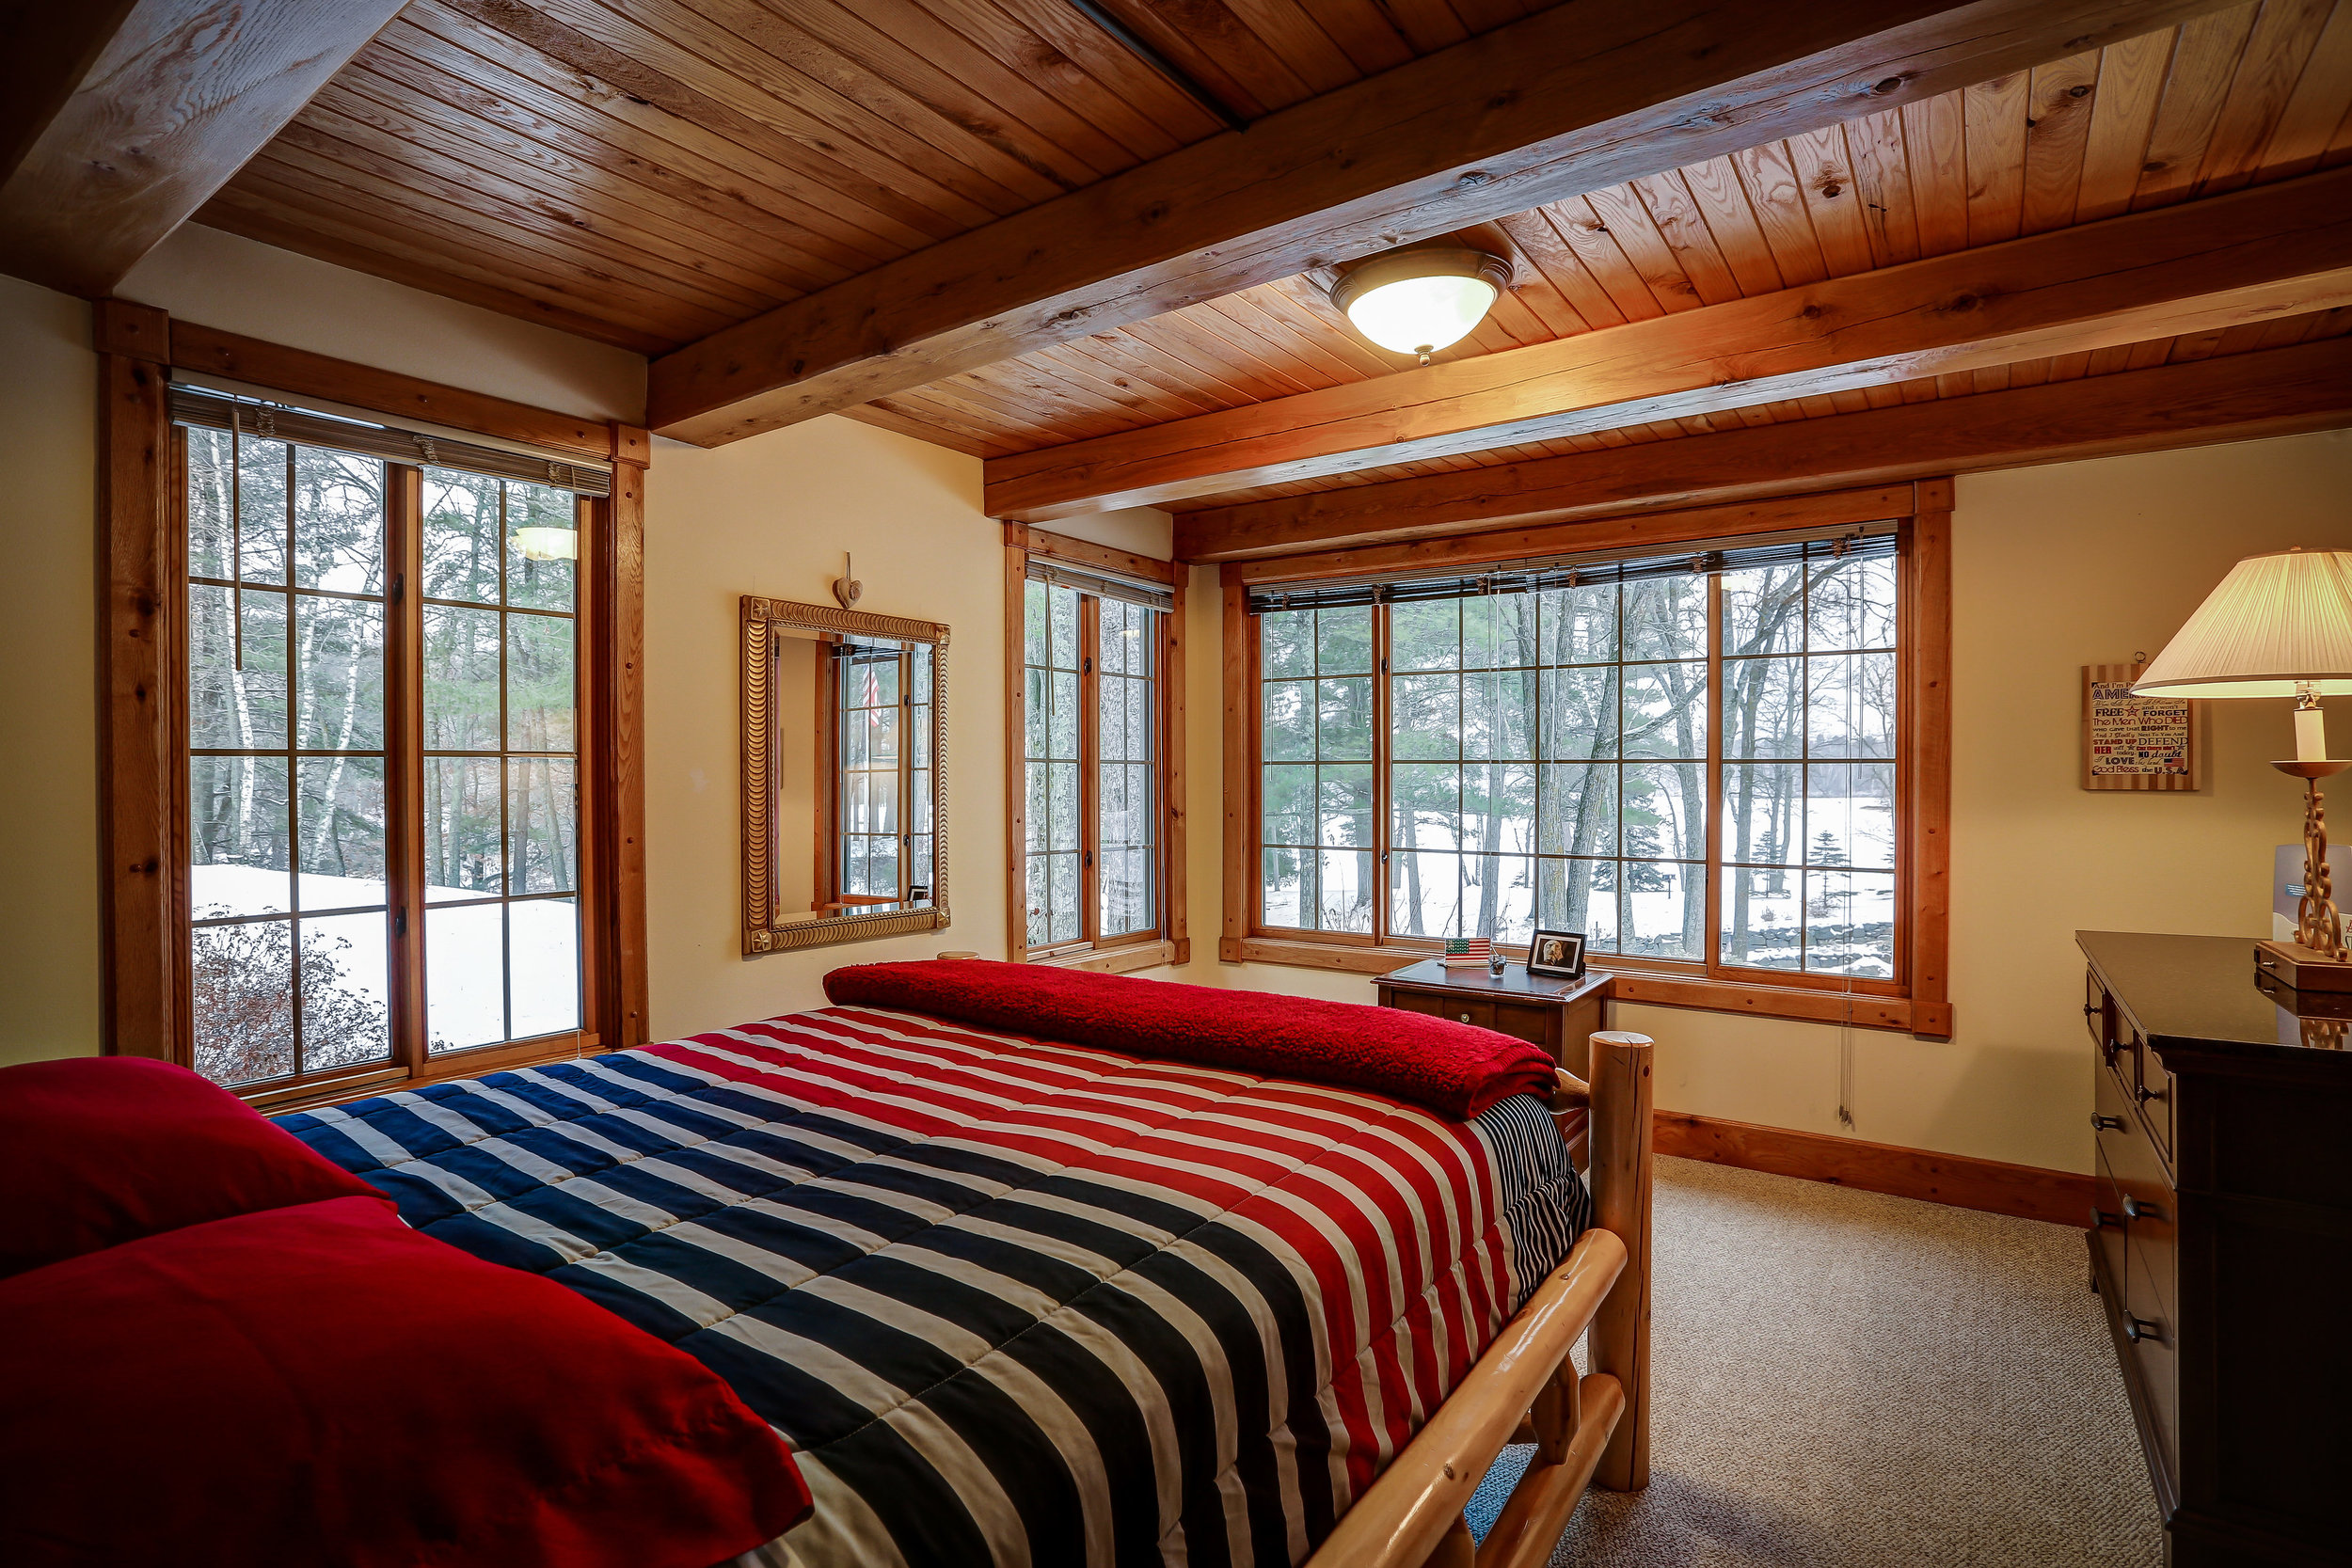 Americana Room - Main Level | Queen bed and shared bathroom in hallway